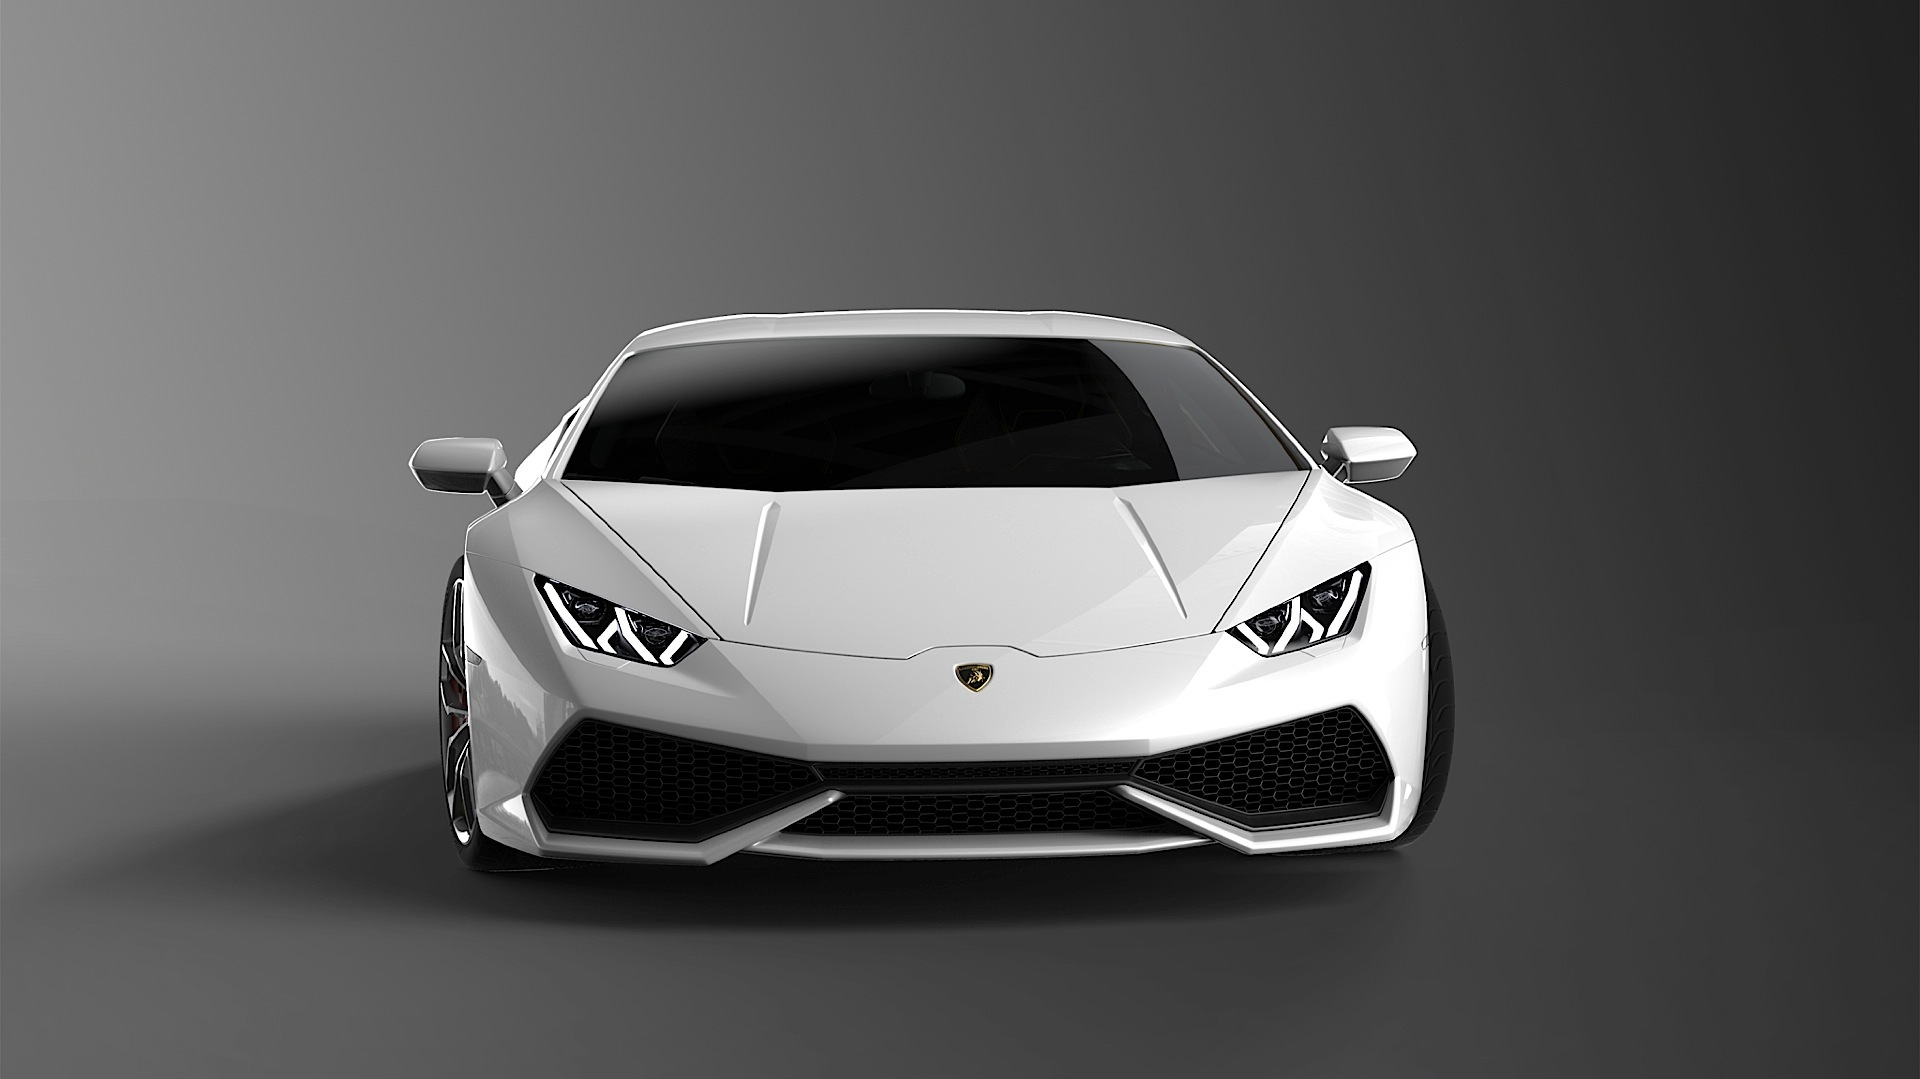 lamborghini huracan lp 610 4 specs 2014 2015 2016 2017 2018 autoevolution. Black Bedroom Furniture Sets. Home Design Ideas